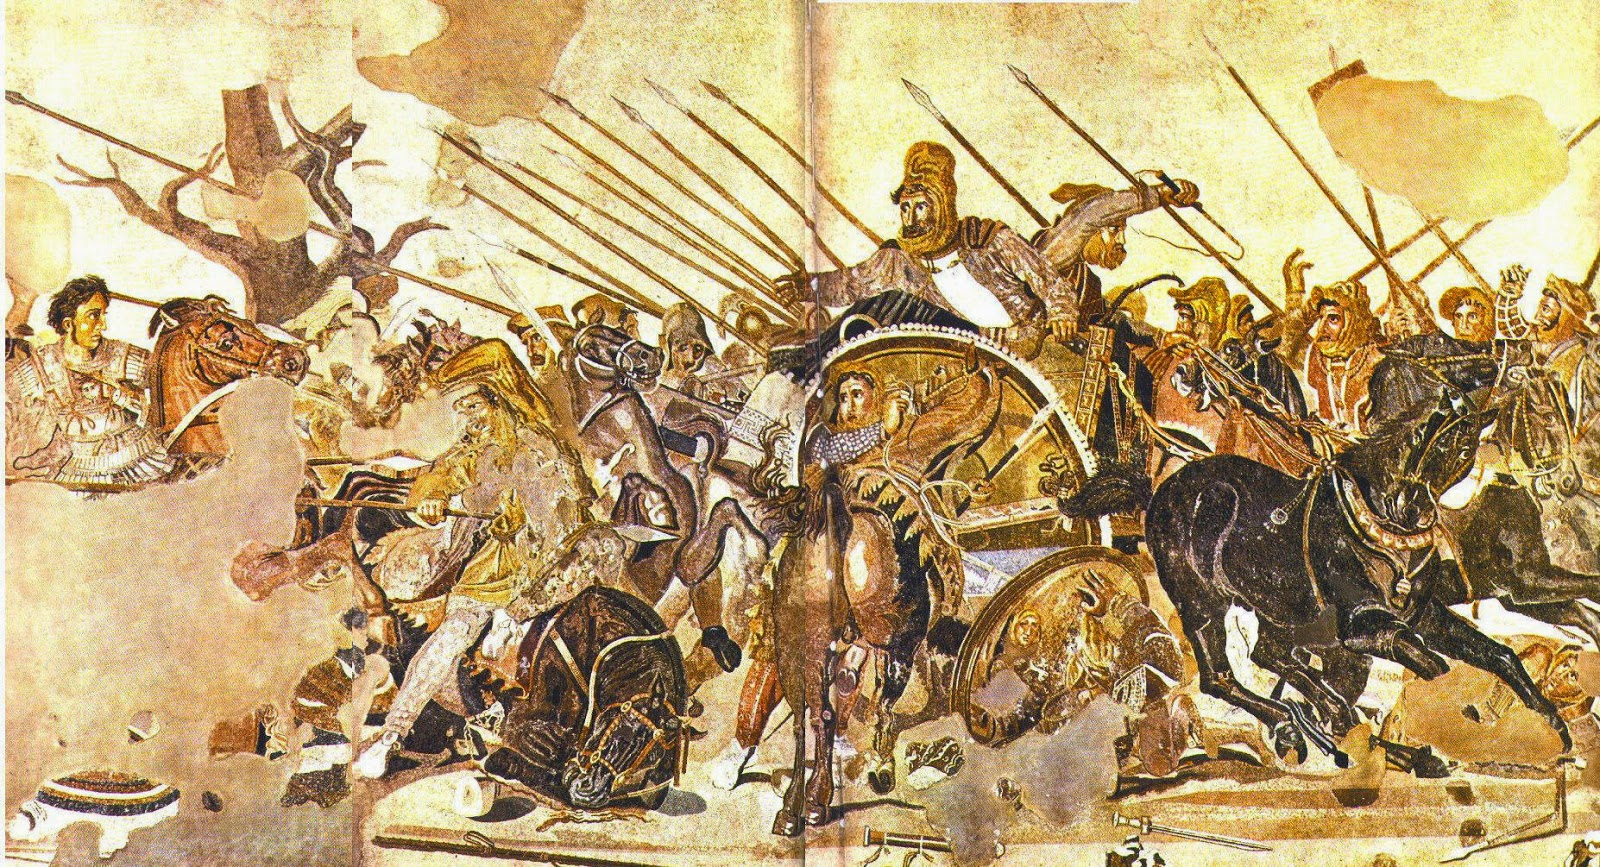 Darius Iii Backgrounds, Compatible - PC, Mobile, Gadgets  1600x867 px